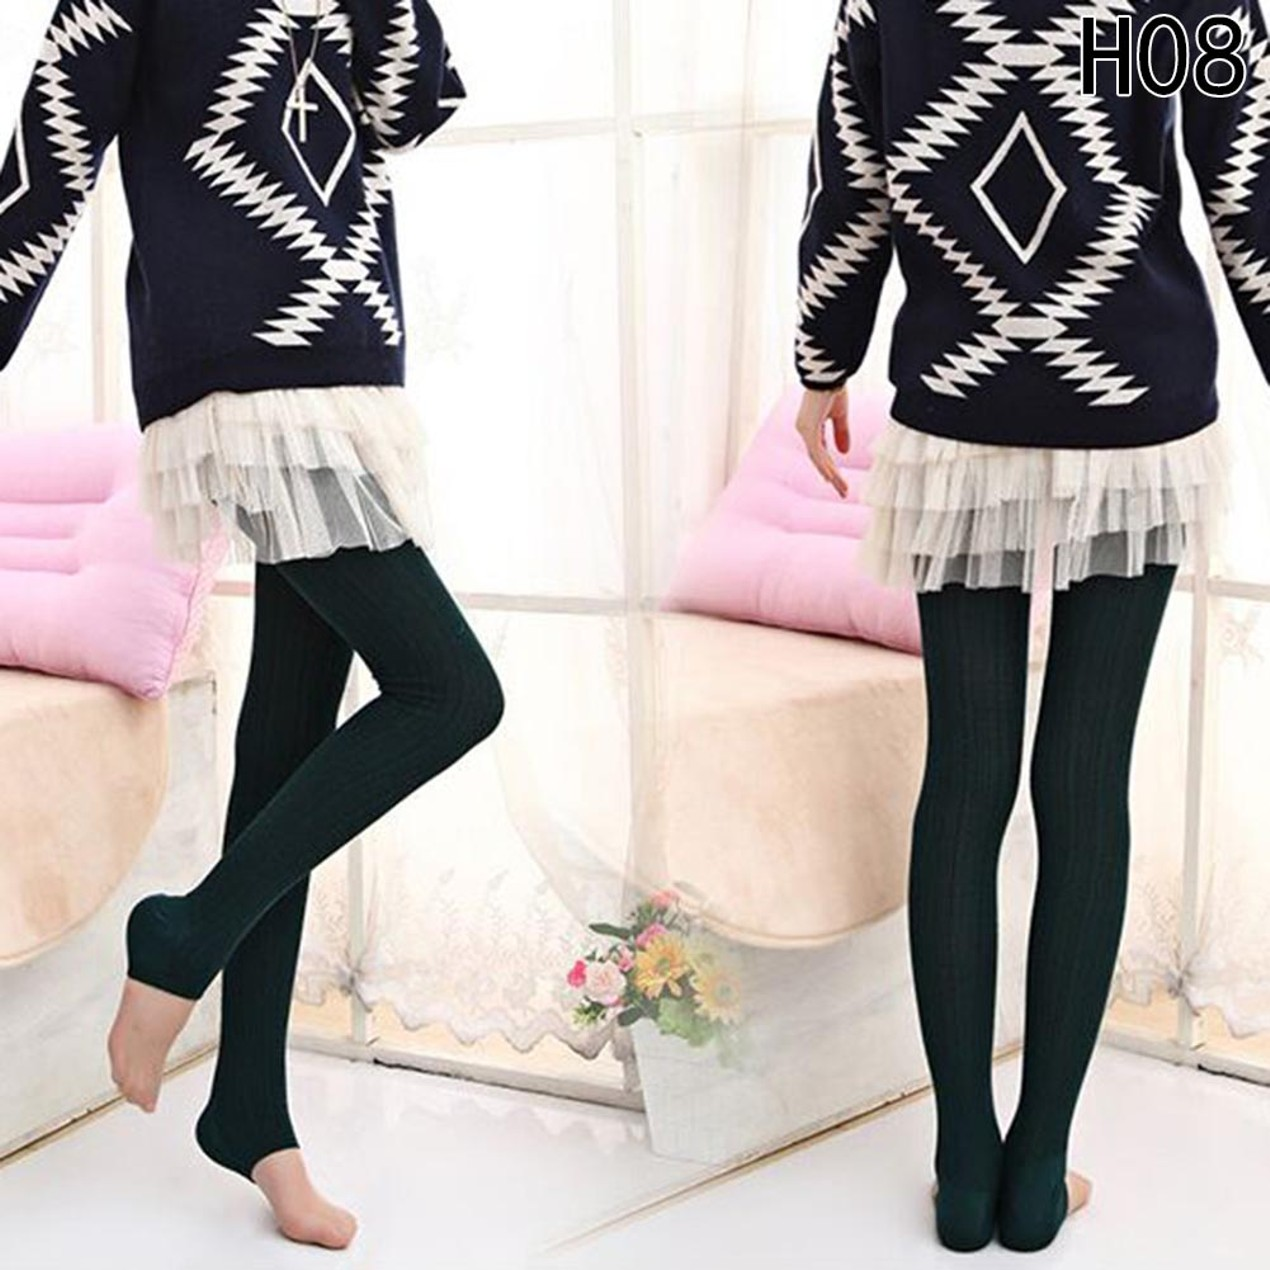 fa86d5de7ff ... Women Winter Spring Autumn Cotton Stockings Warm Wool Tights Pantyhose  ...